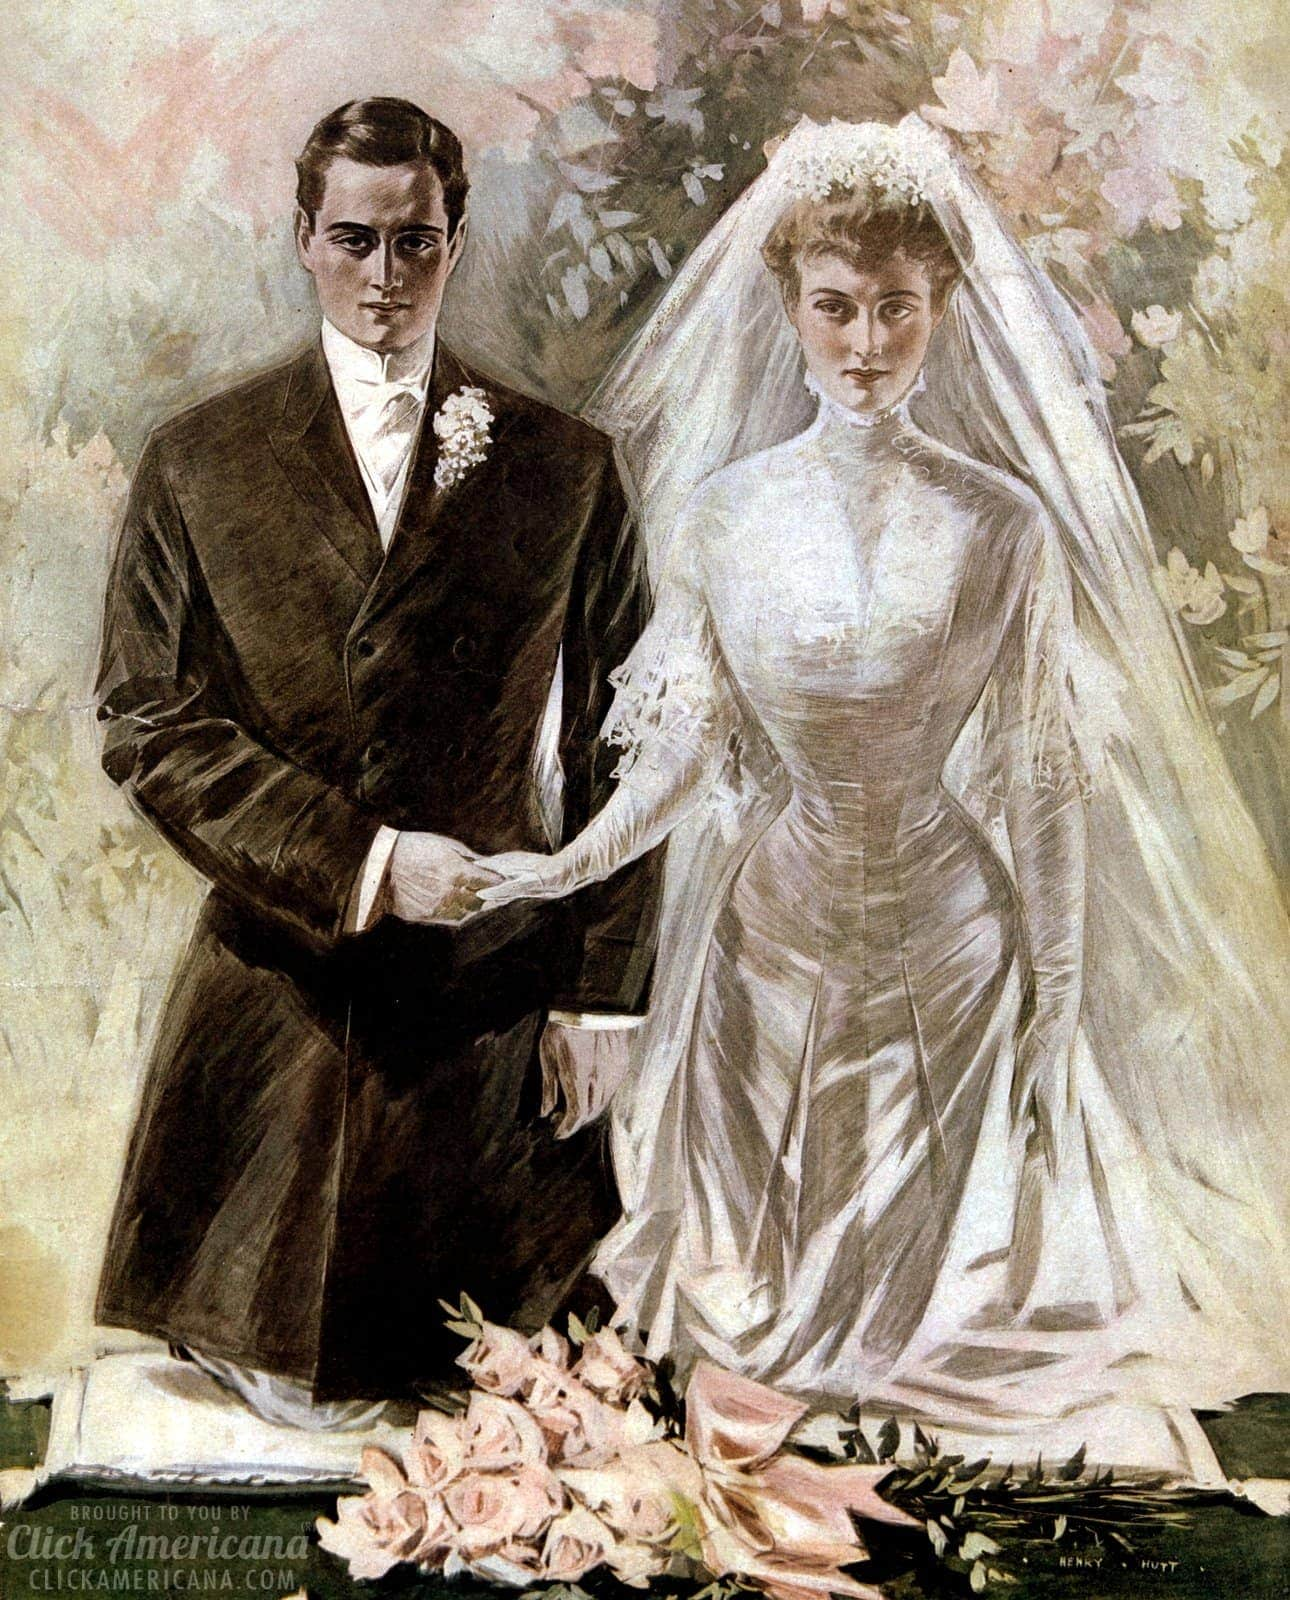 Vintage wedding dresses from the early 1900s